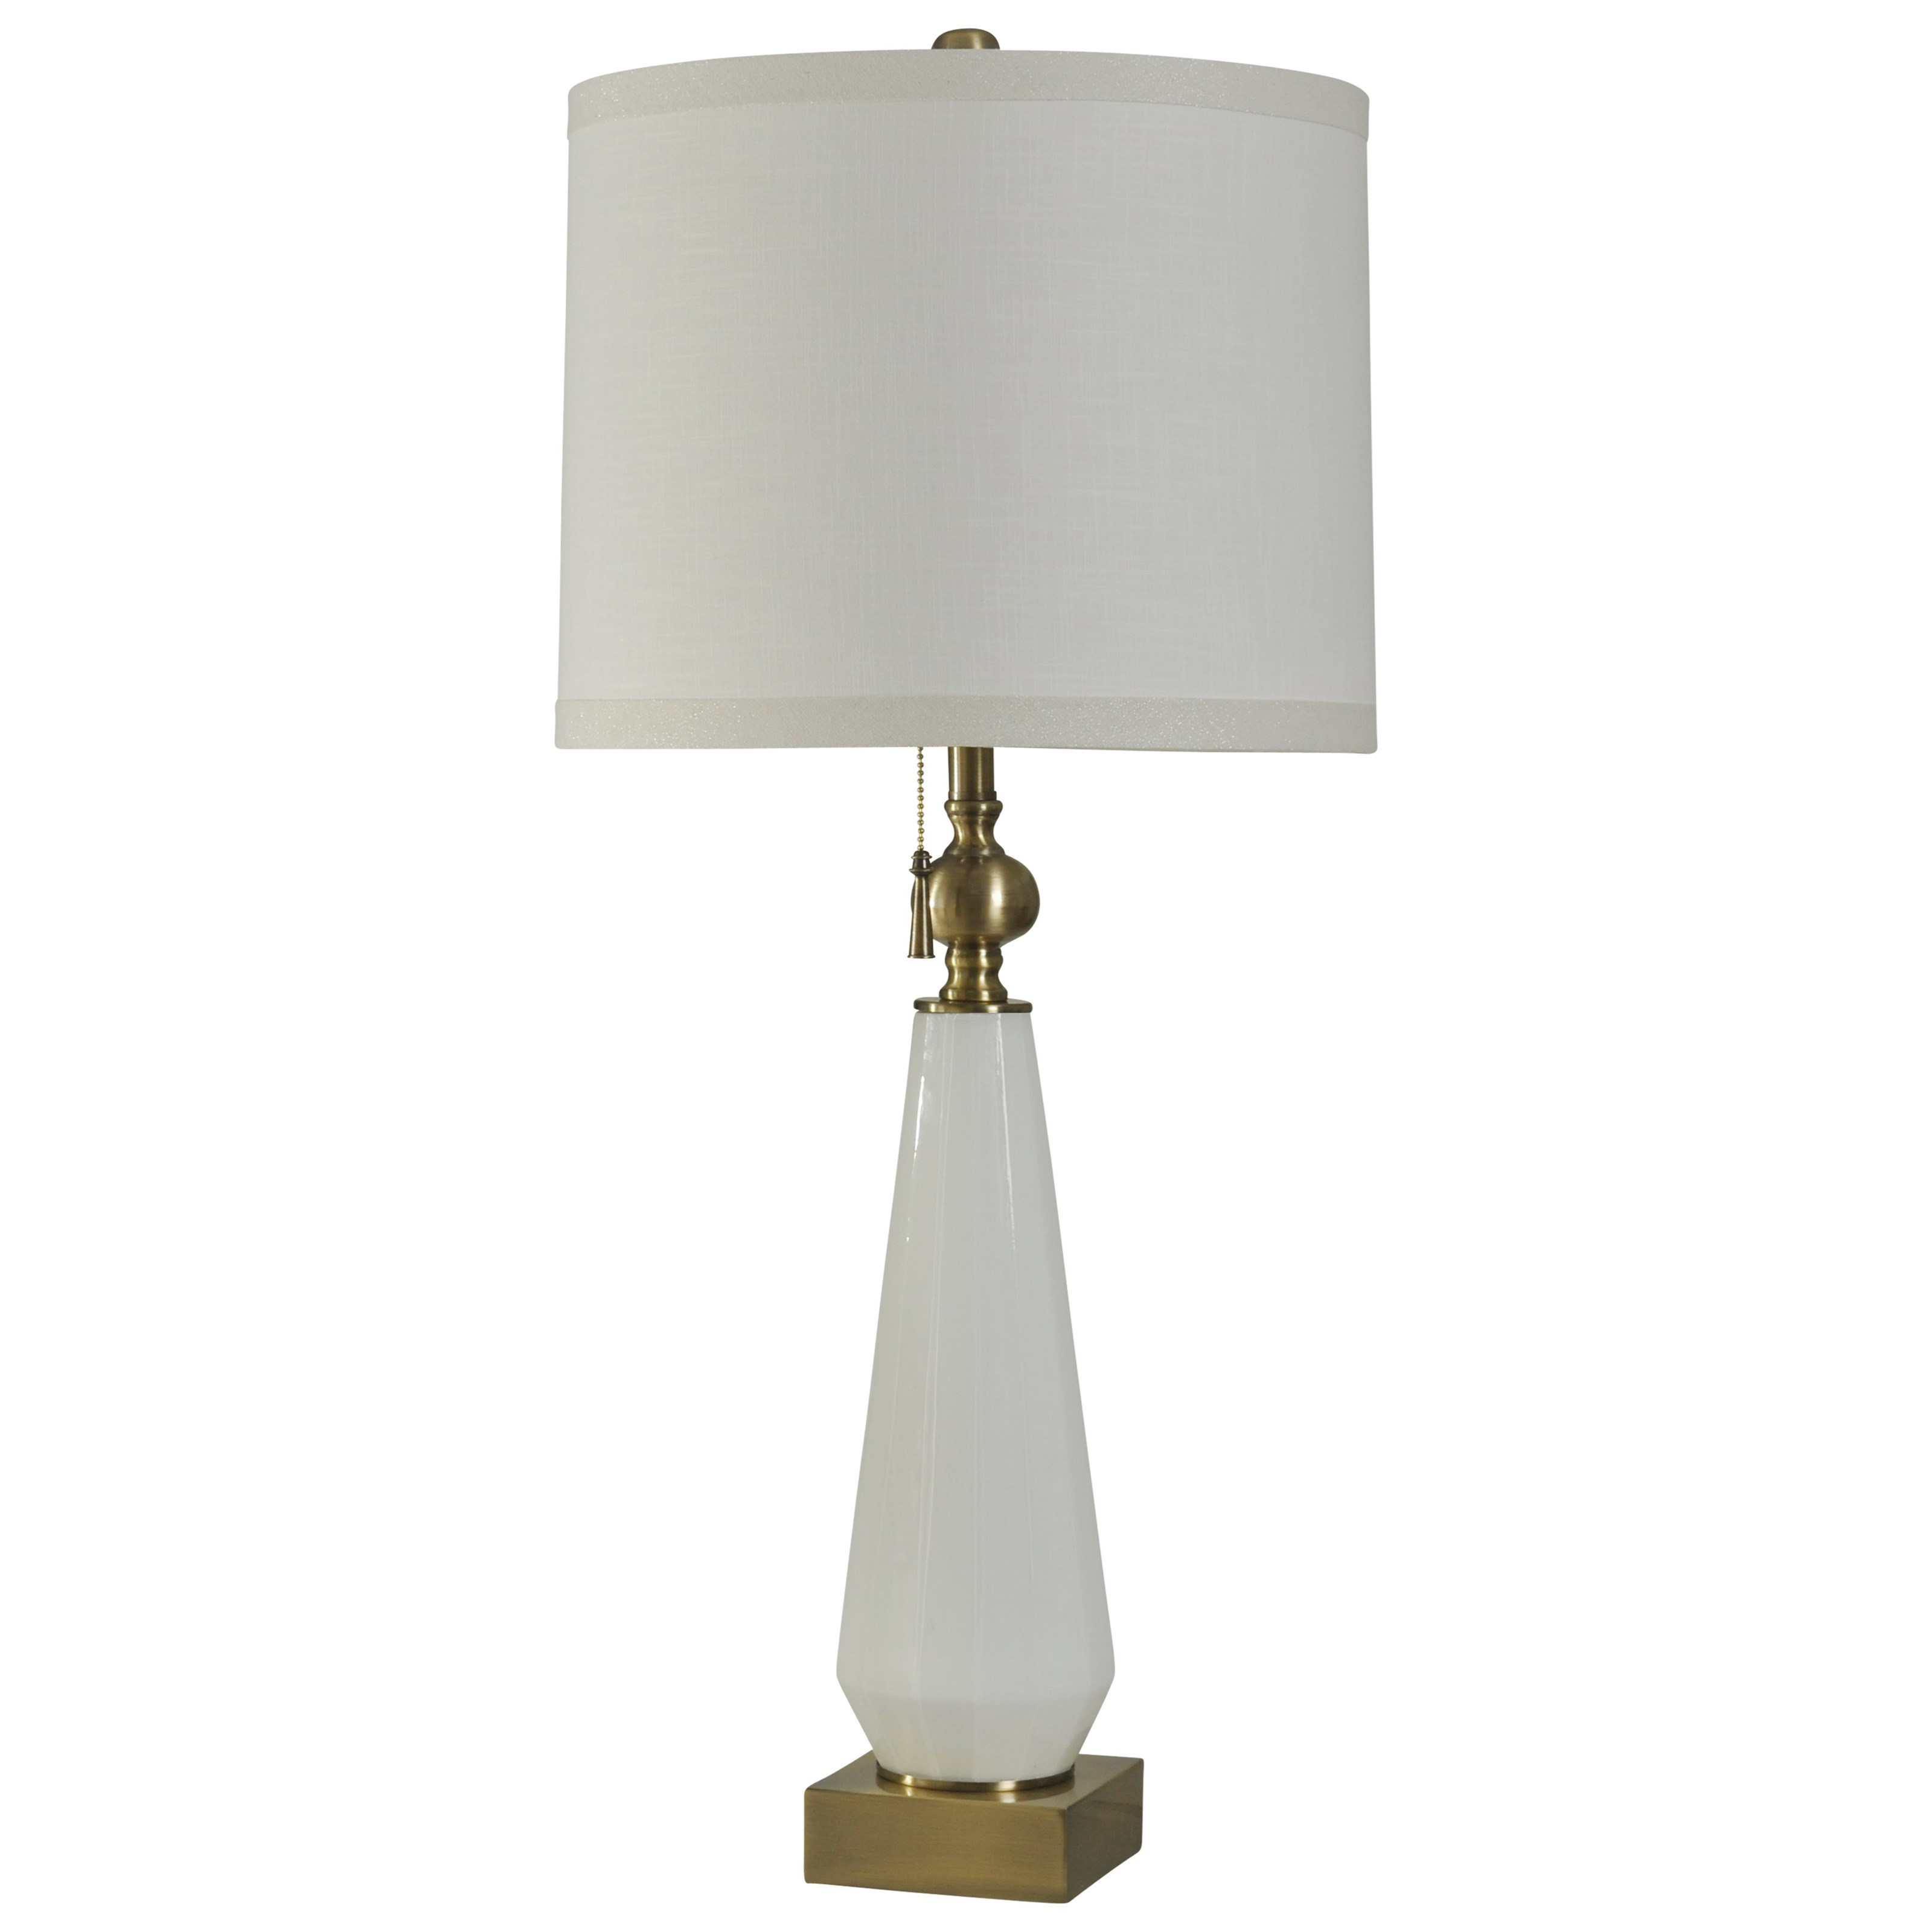 Lamps White Glass Table Lamp by StyleCraft at Alison Craig Home Furnishings